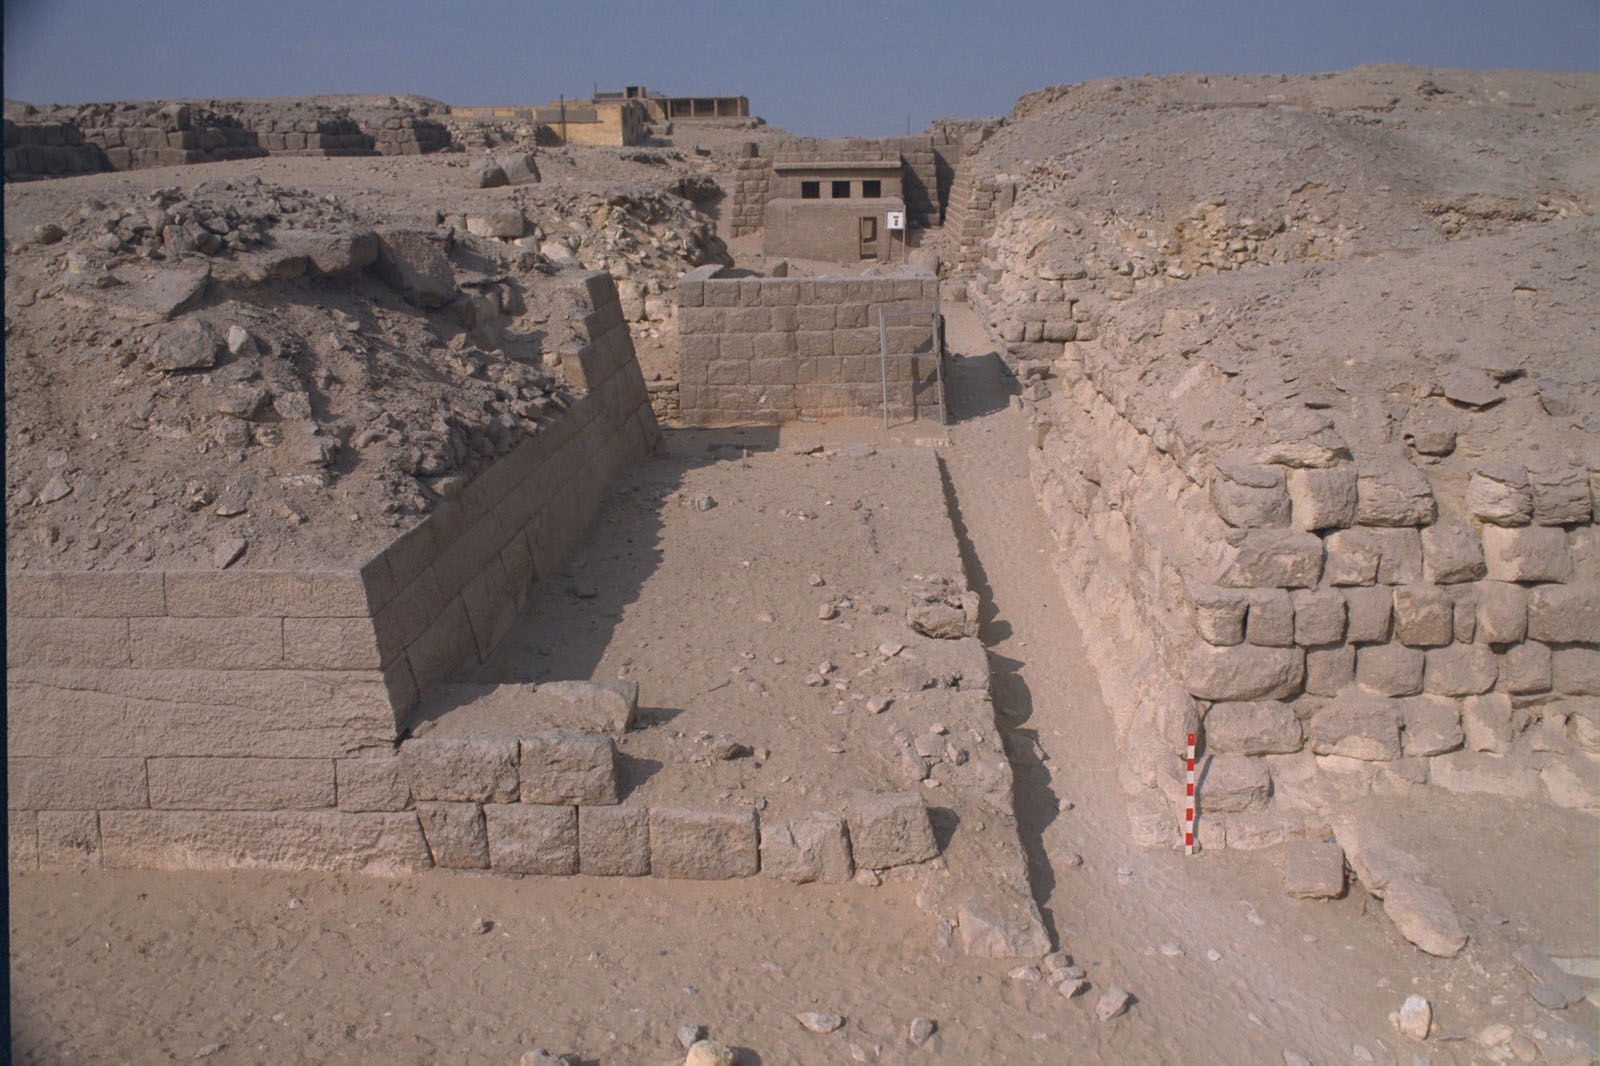 Western Cemetery: Site: Giza; View: G 2155, Kaninisut III (G 2156a), G 2160, G 2136, G 2100-II